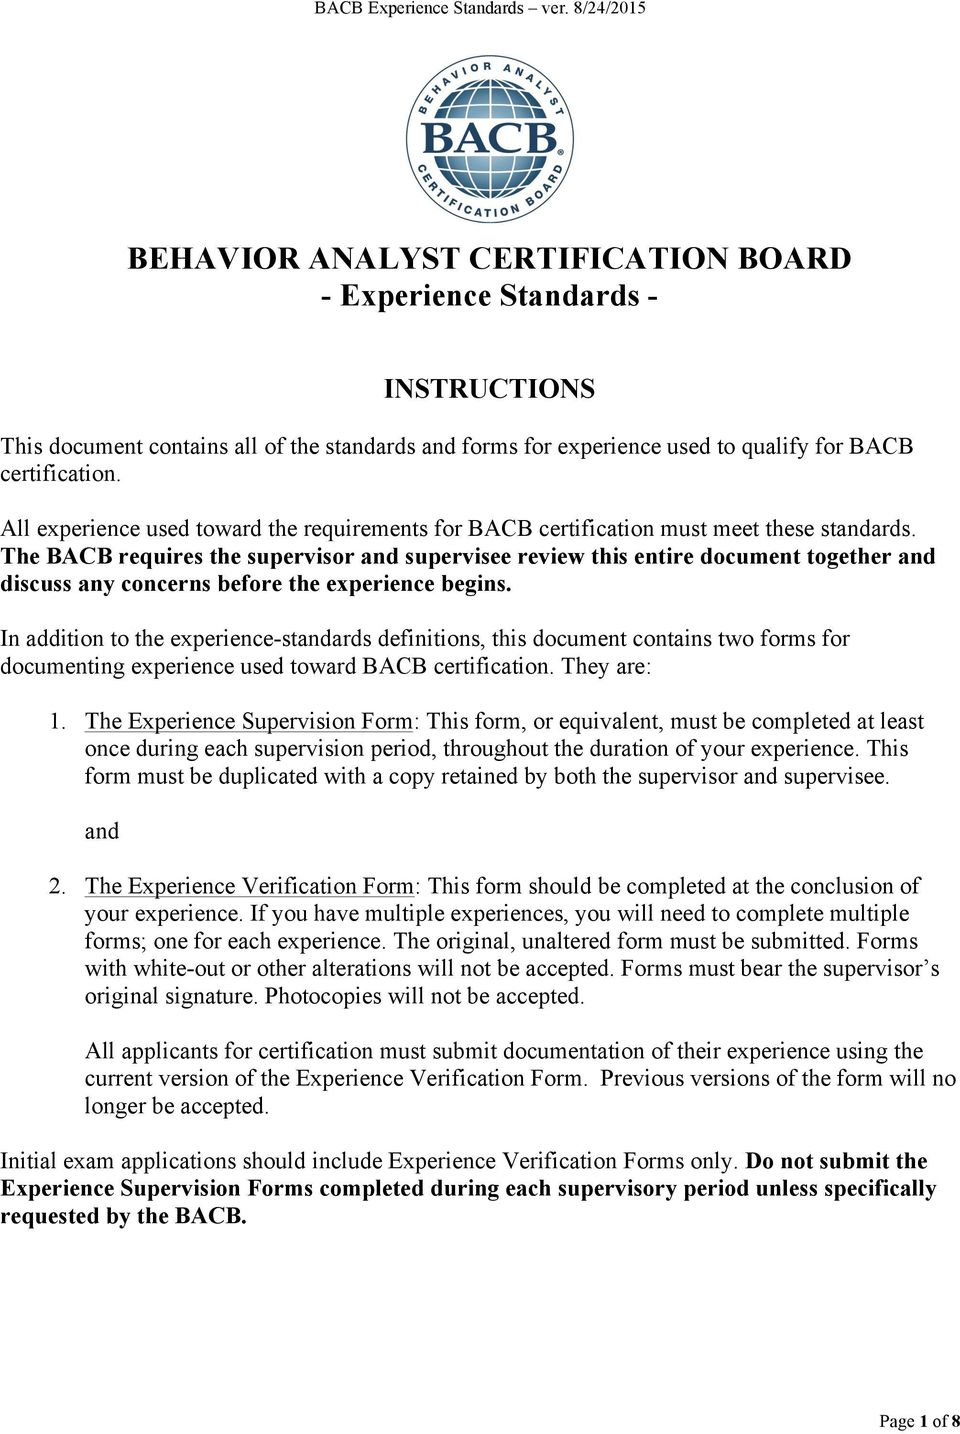 Behavior Analyst Certification Board Experience Standards Pdf